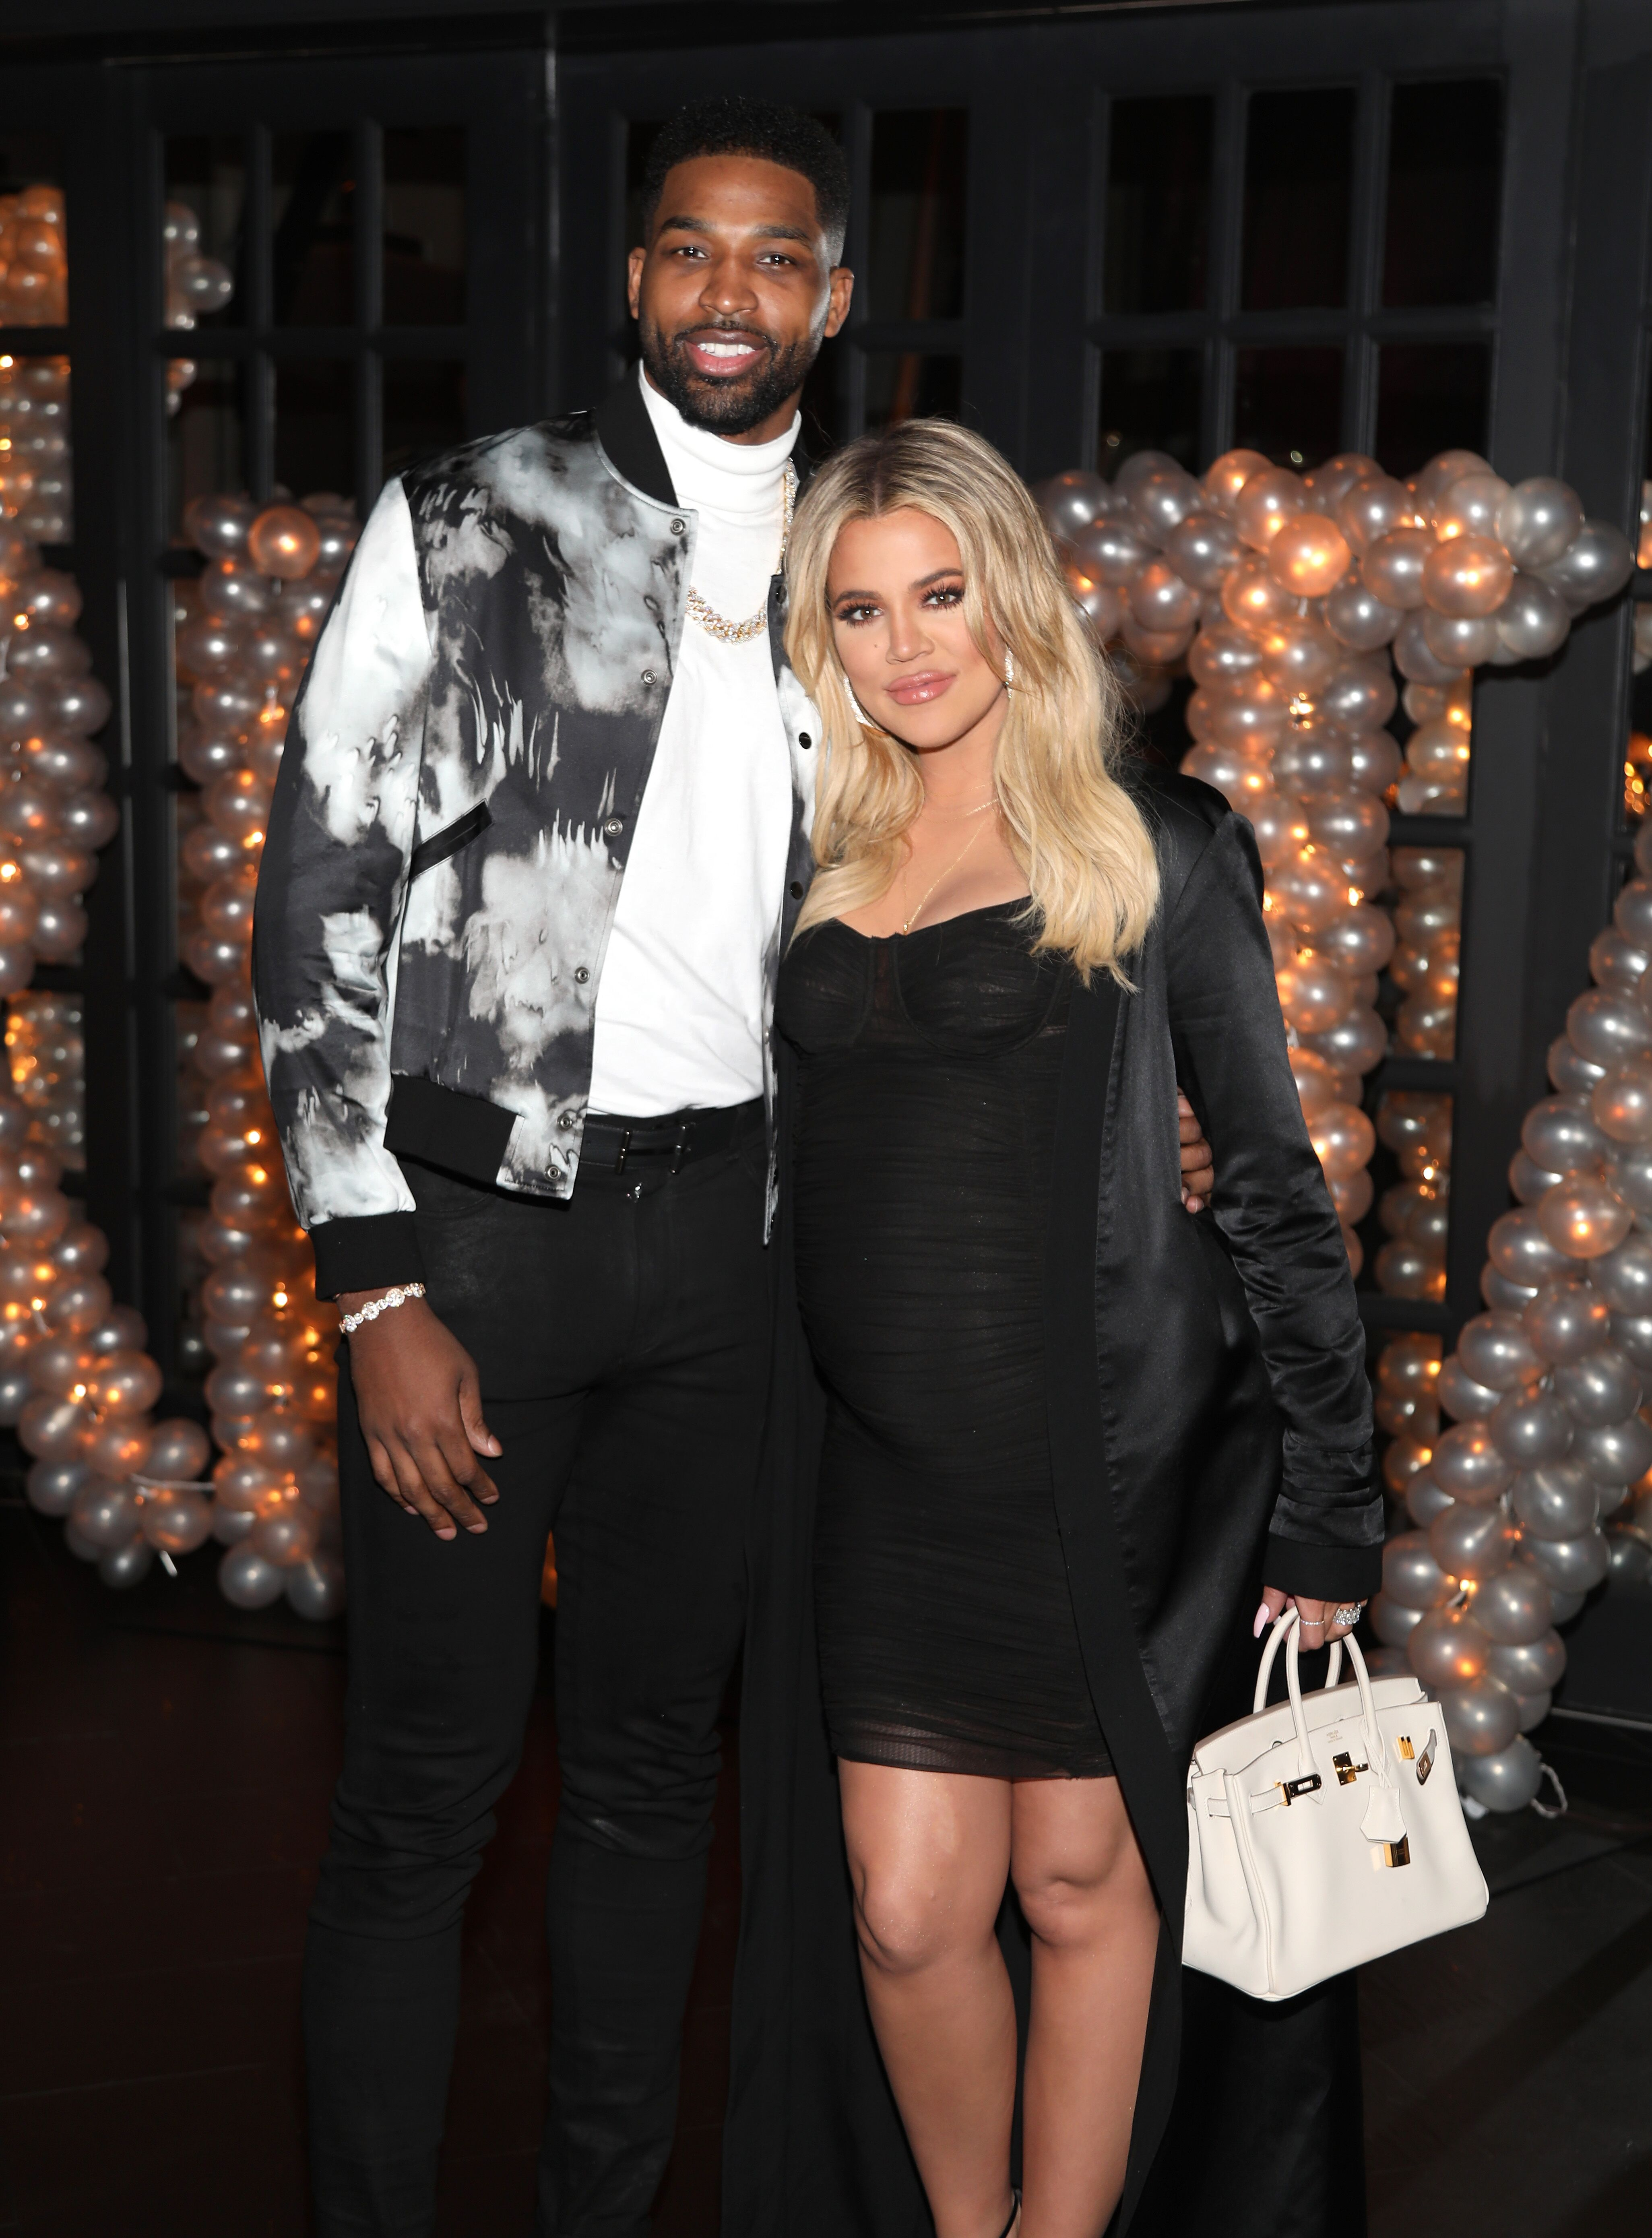 Tristan Thompson and Khloe Kardashian celebrate his birthday at Beauty & Essex on March 10, 2018 | Photo: Getty Images